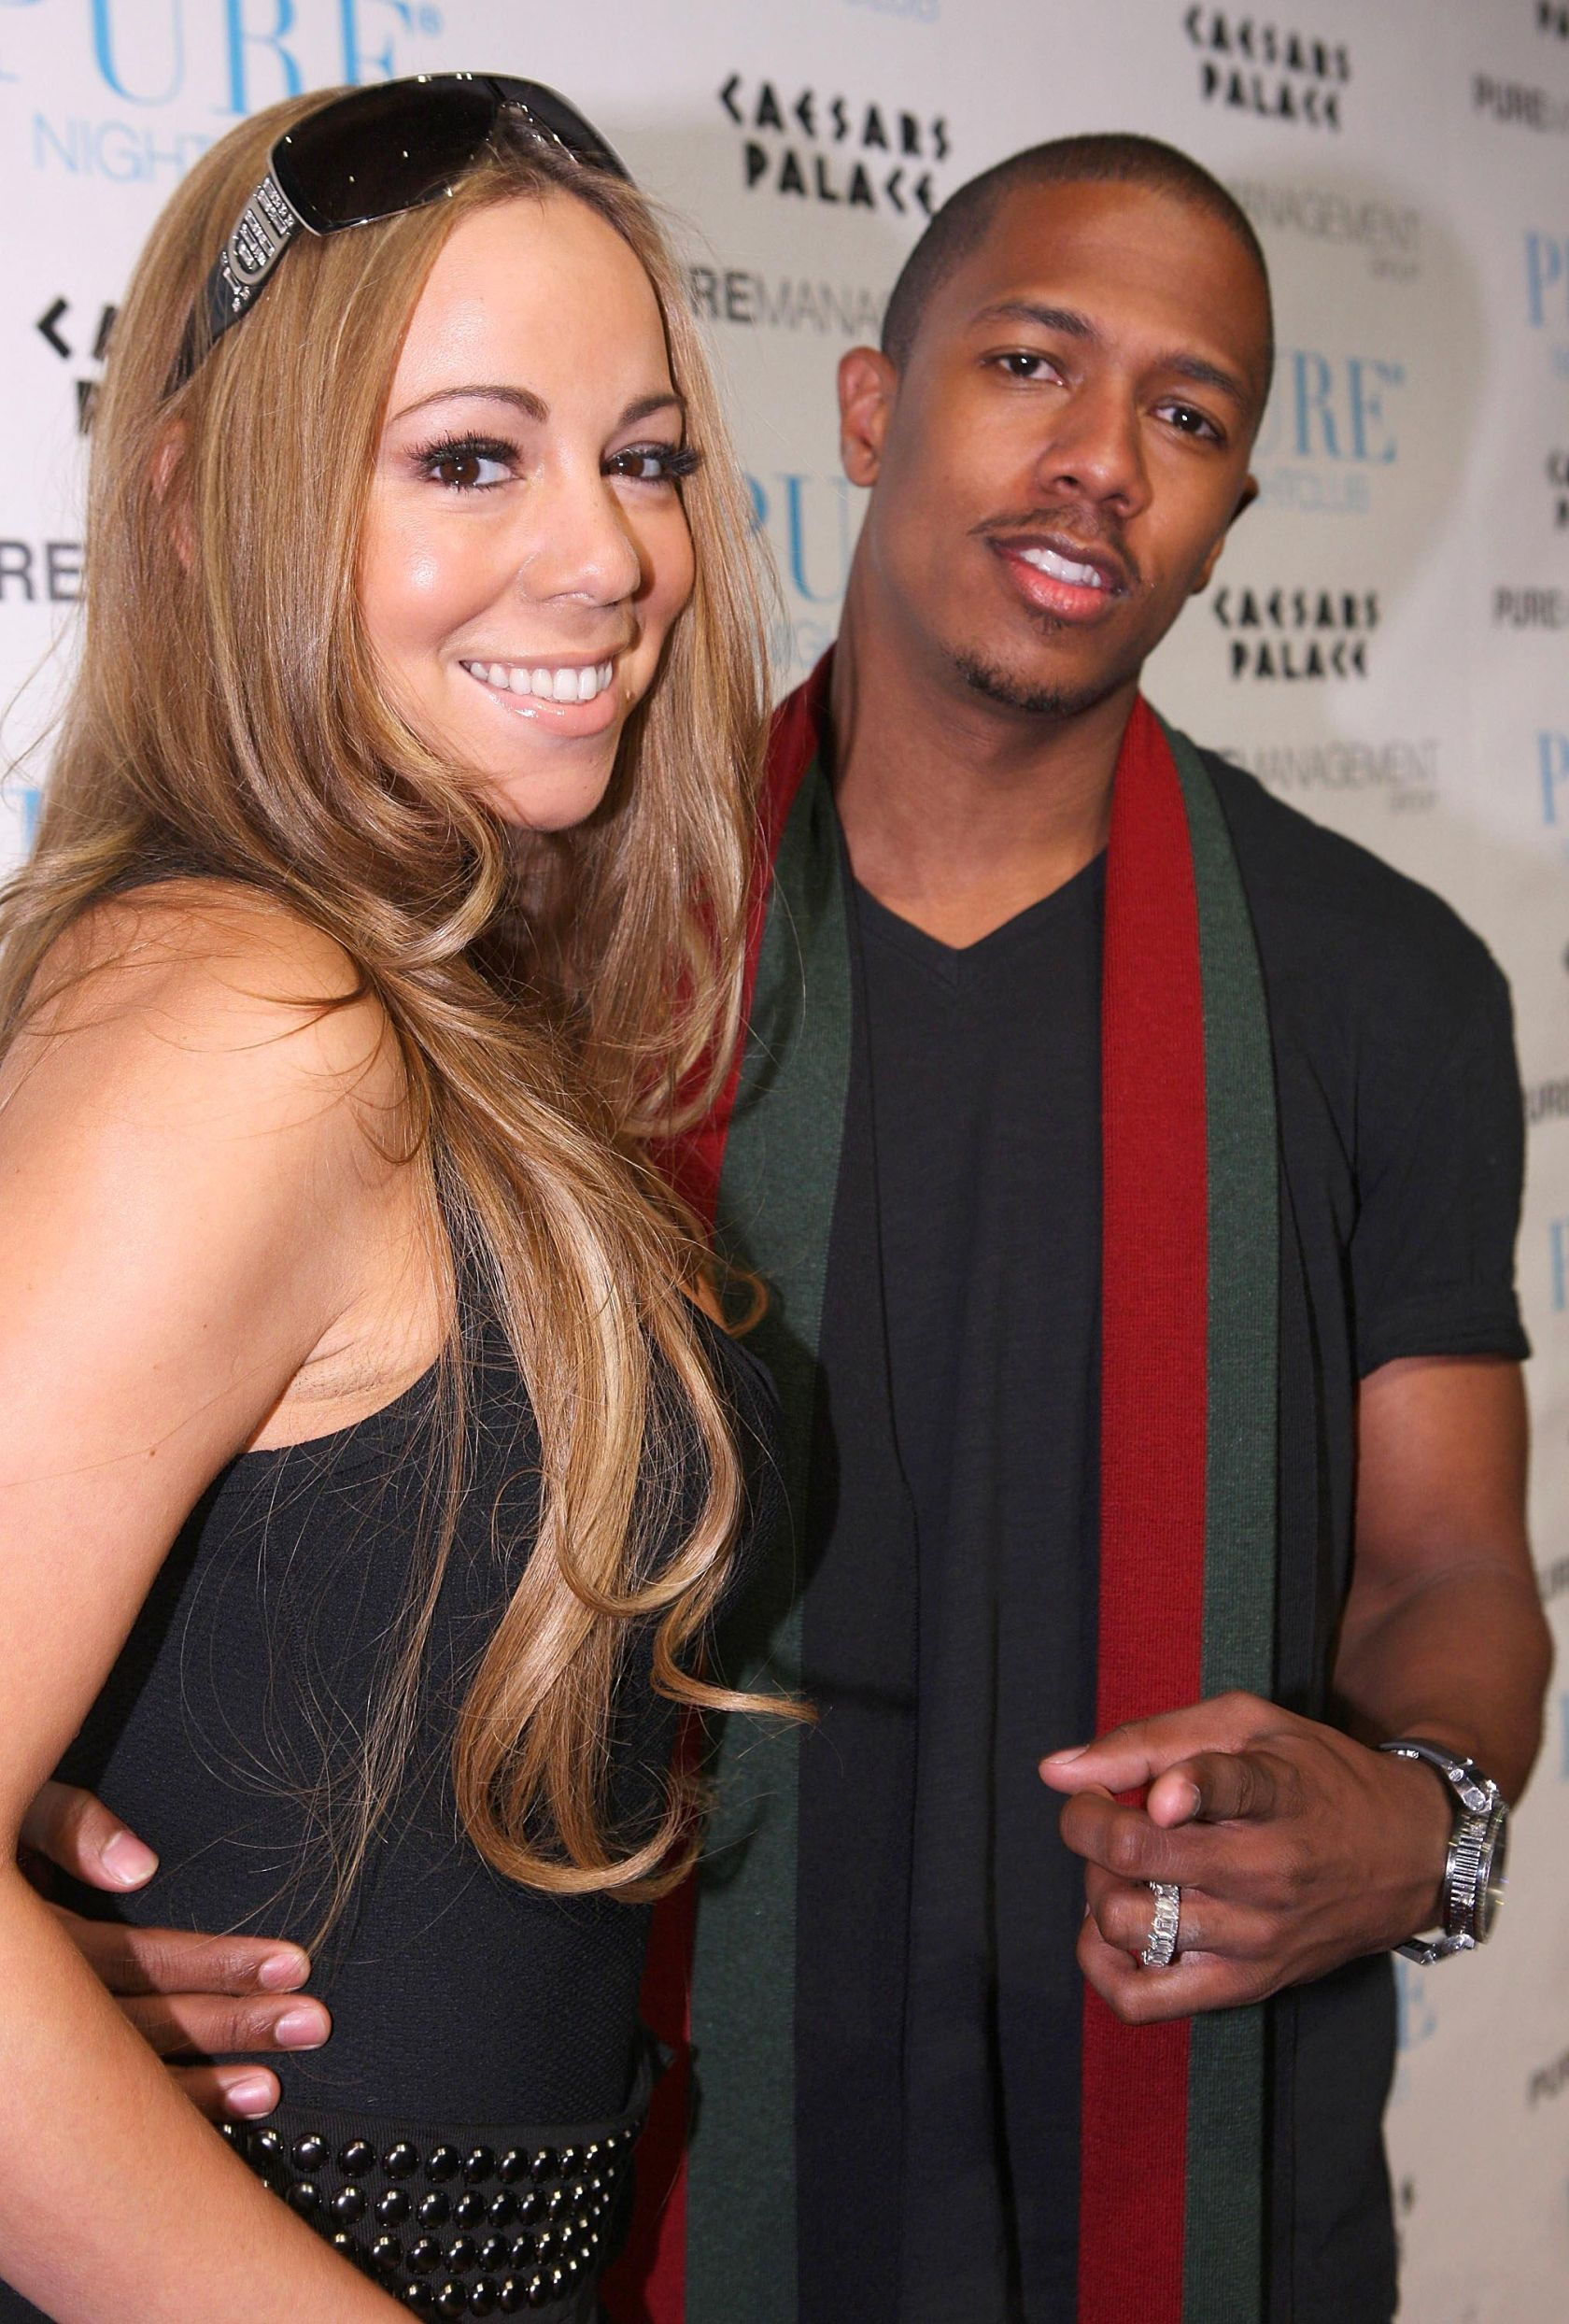 Mariah Carey Hosts Nick Cannon's Birthday Party at PURE Nightclub